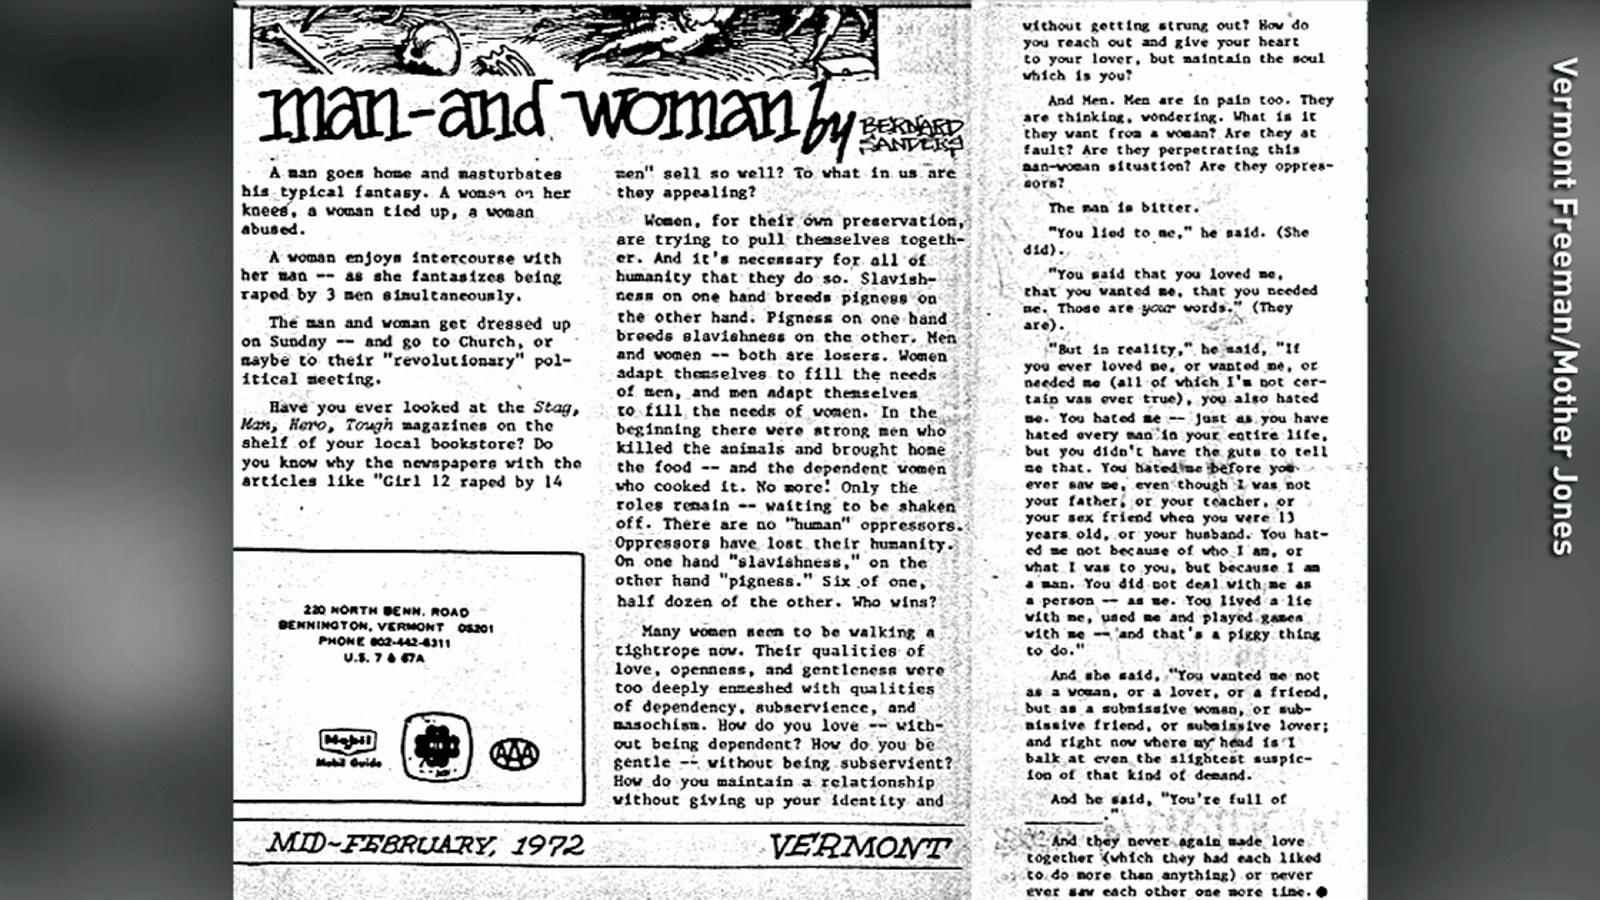 001 Bernie Sanders Rape Essay Man Woman Lead Full Phenomenal Full